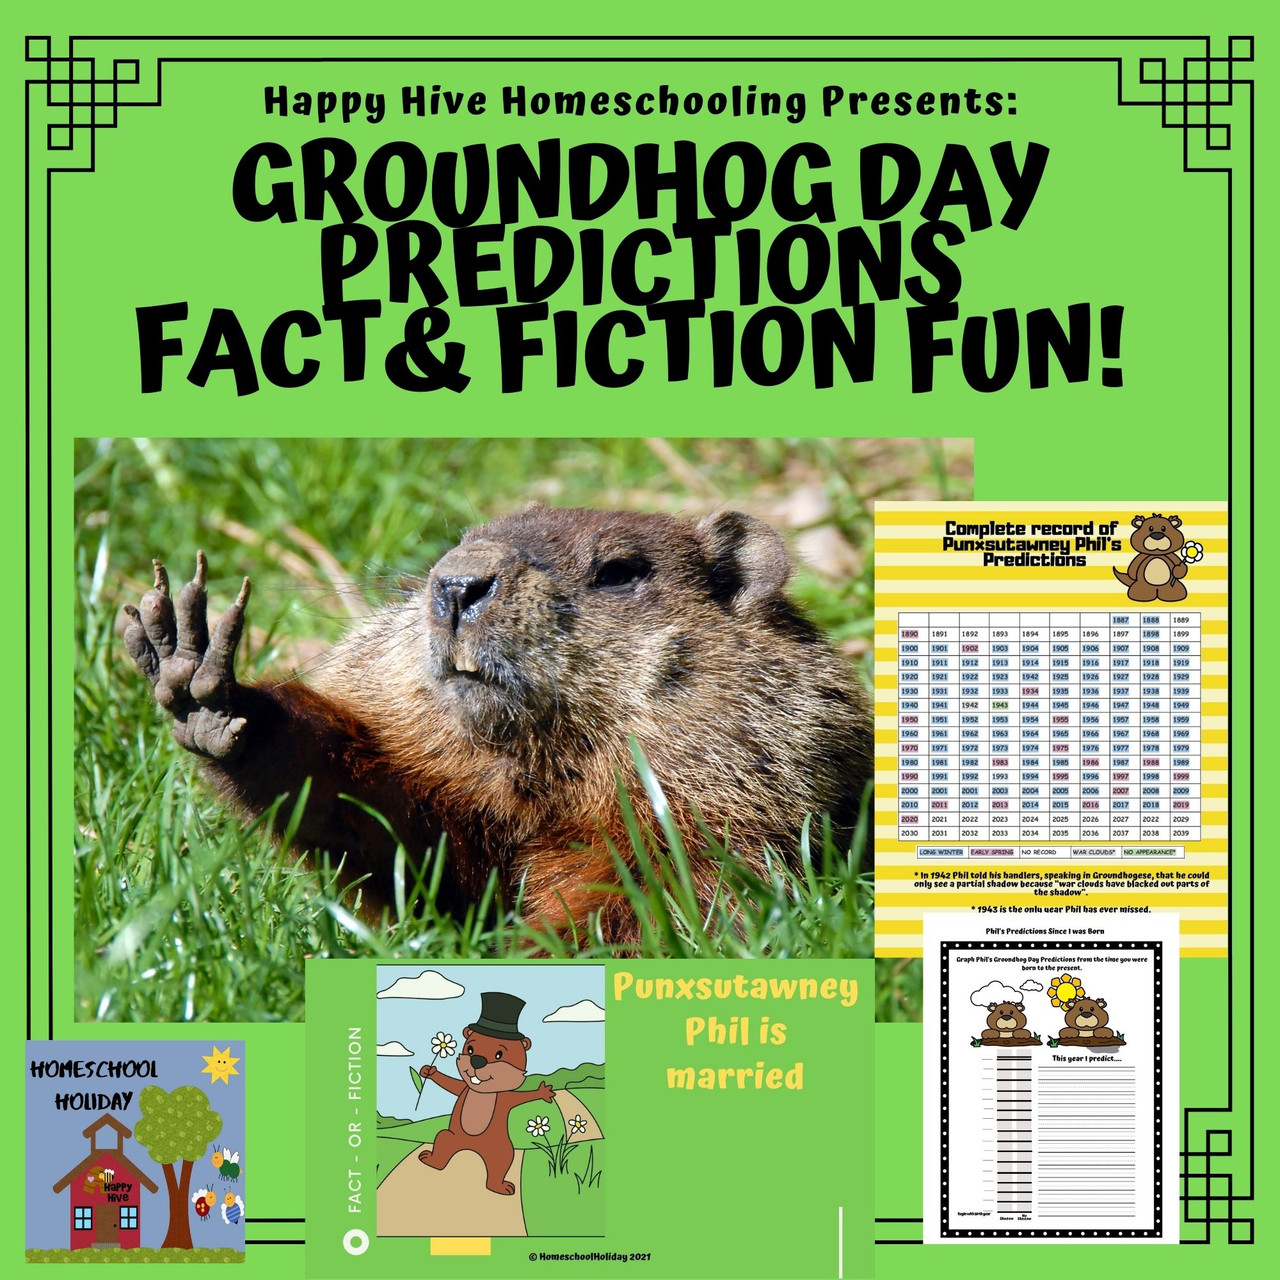 medium resolution of Groundhog Day Groundhog Prediction \u0026 Fun Facts Presentation Activities  Google Slides - Amped Up Learning